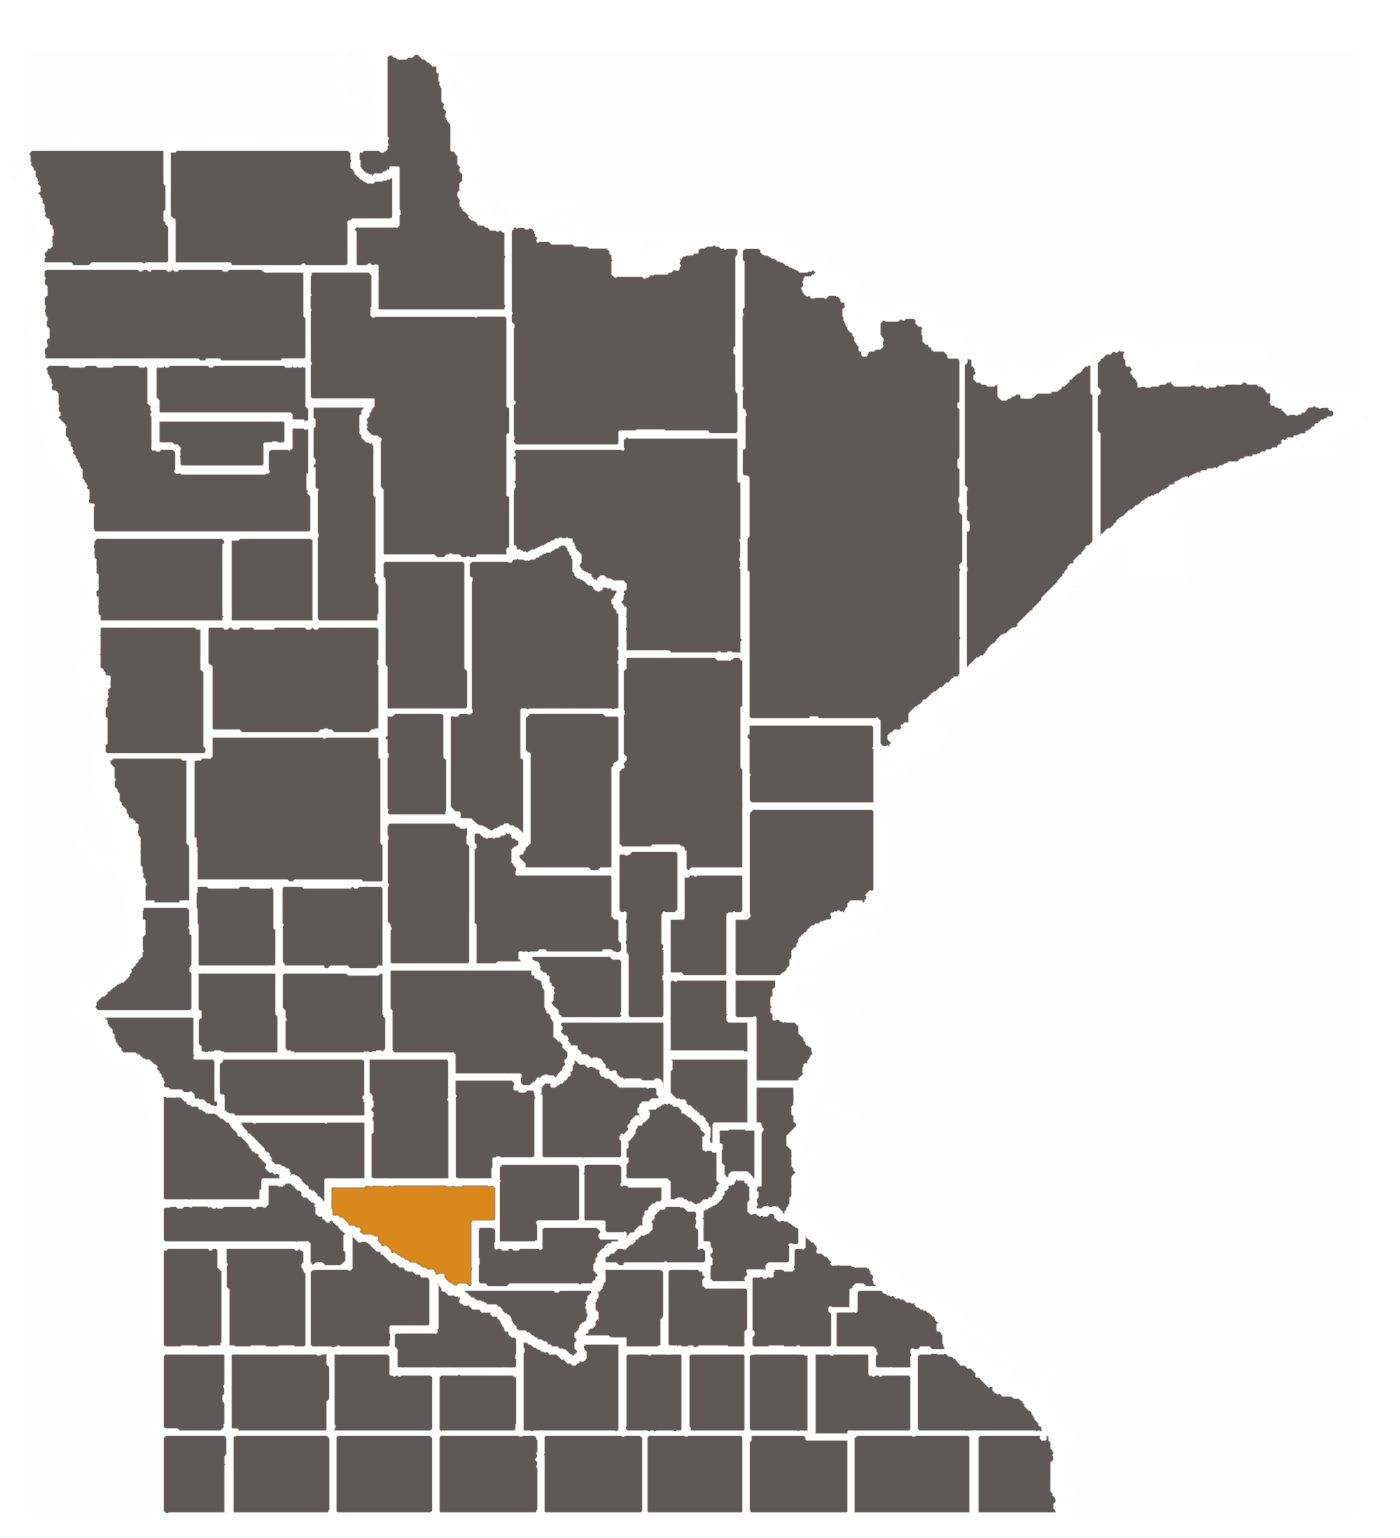 Minnesota map with Renville County highlighted.